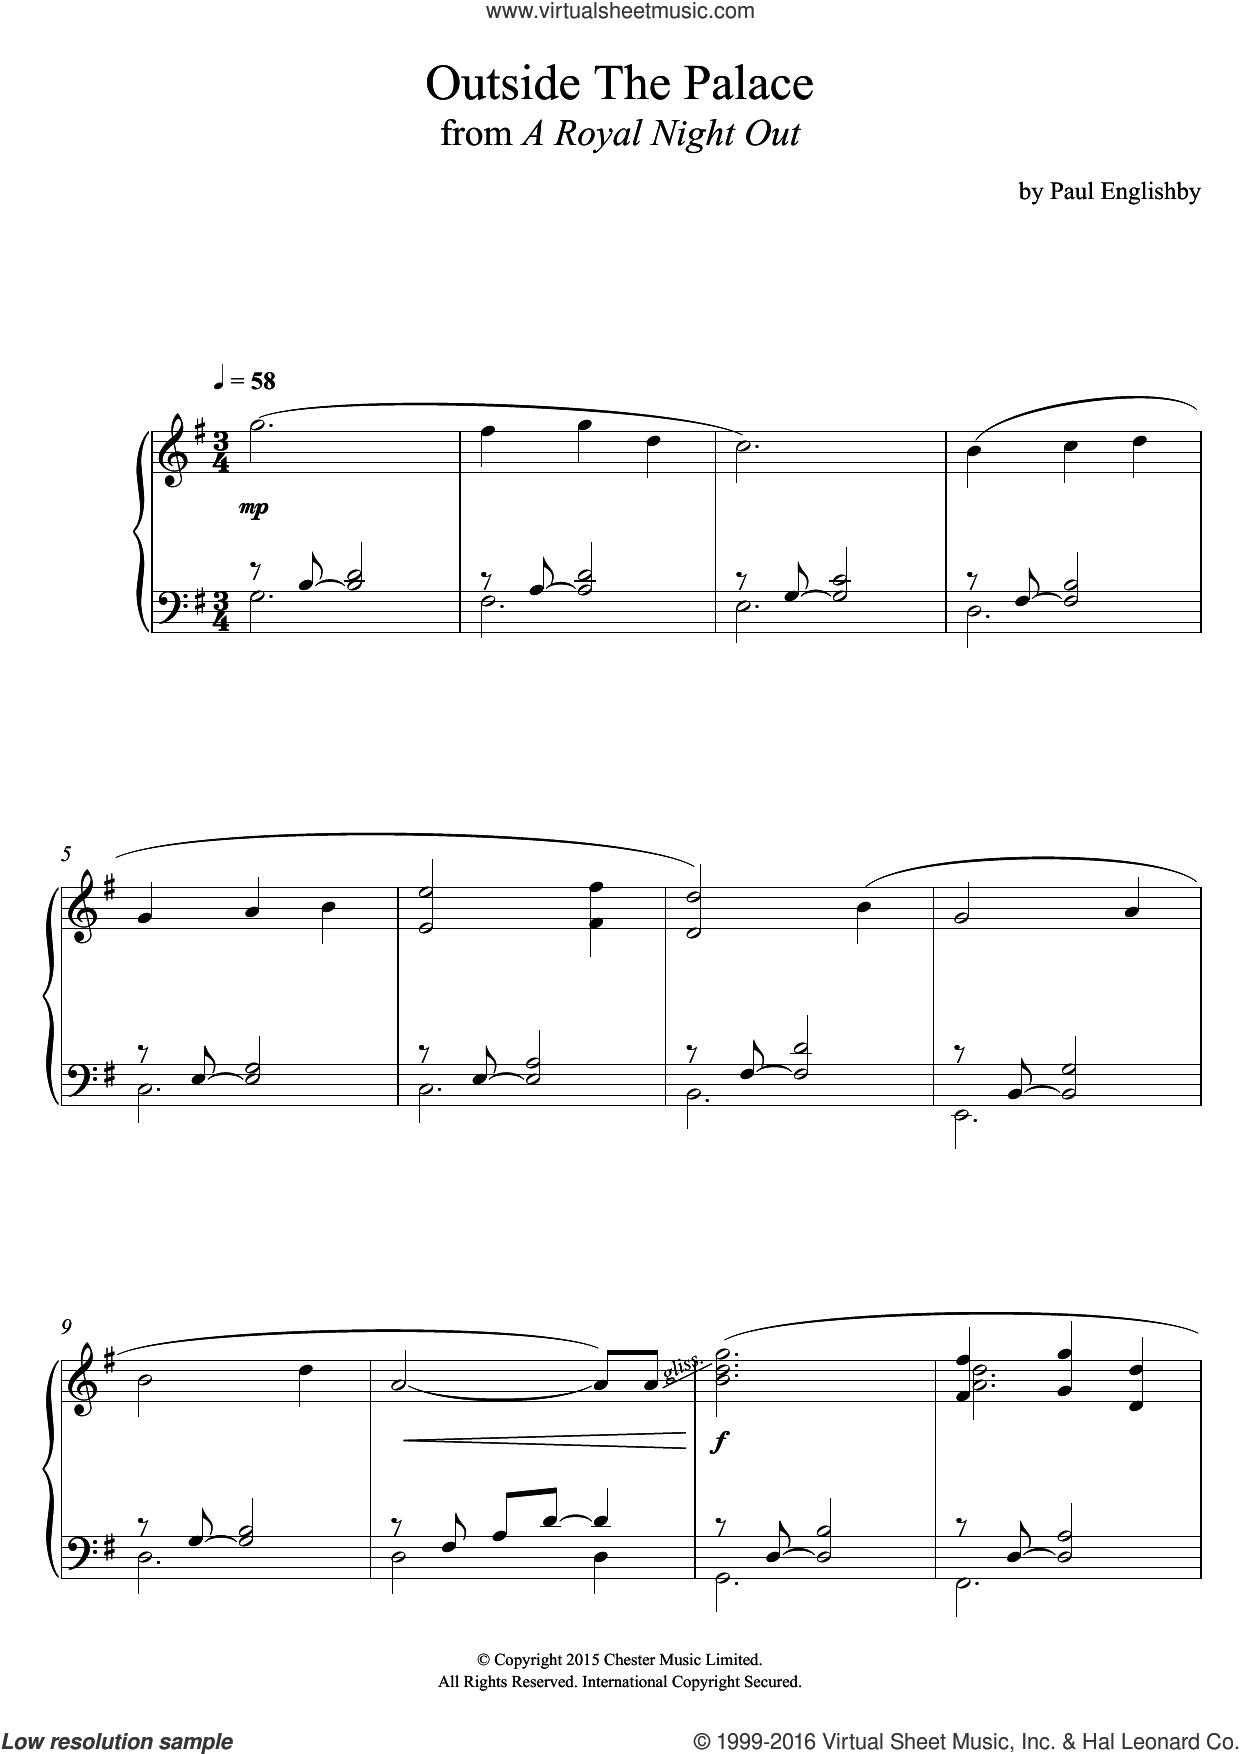 Outside The Palace (From 'A Royal Night Out') sheet music for piano solo by Paul Englishby, intermediate skill level